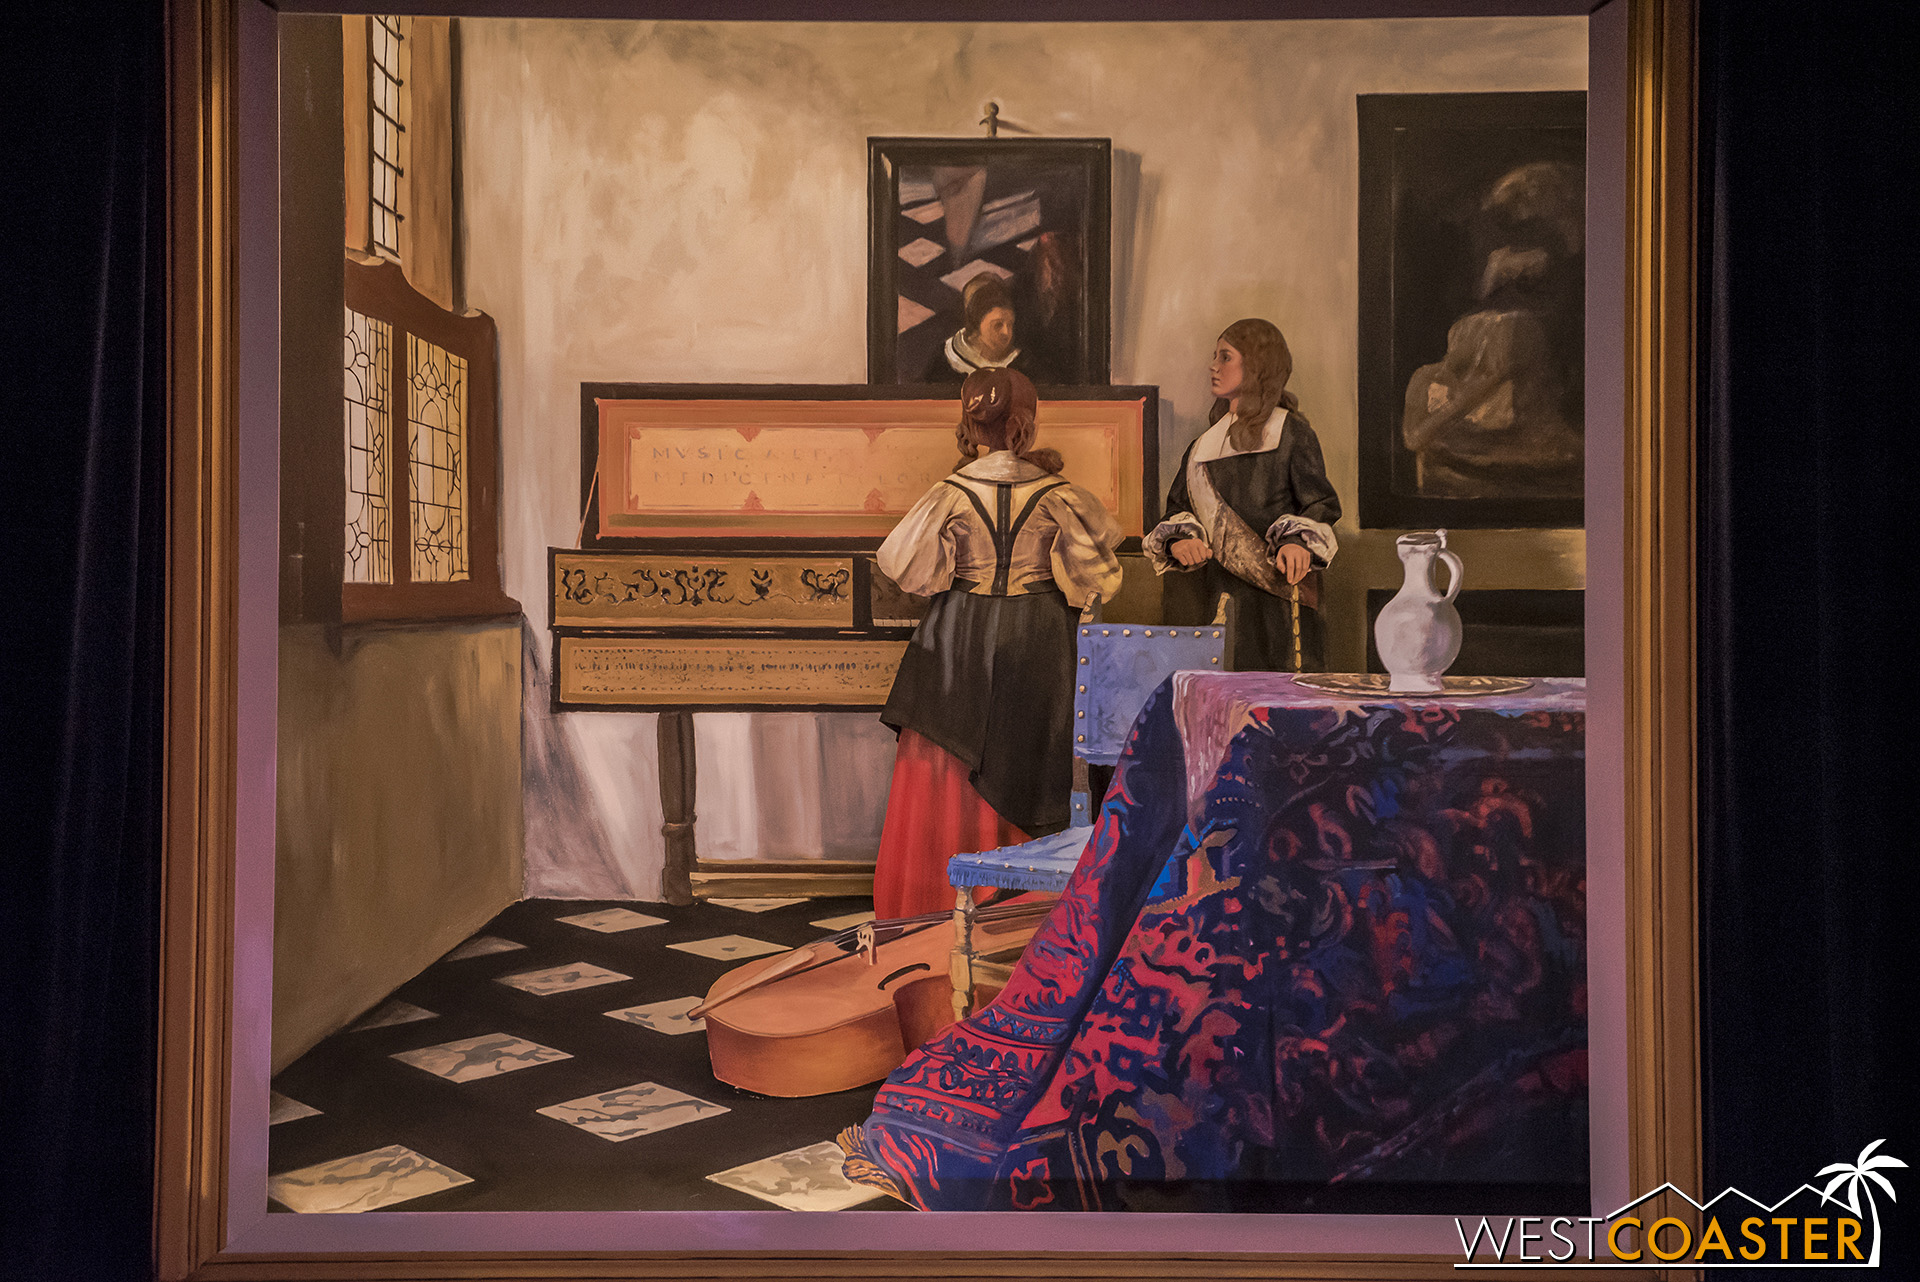 It looks like a flat painting, but those are two live actors and a series of flat components positioned in front and behind to create the illusion of a painting.